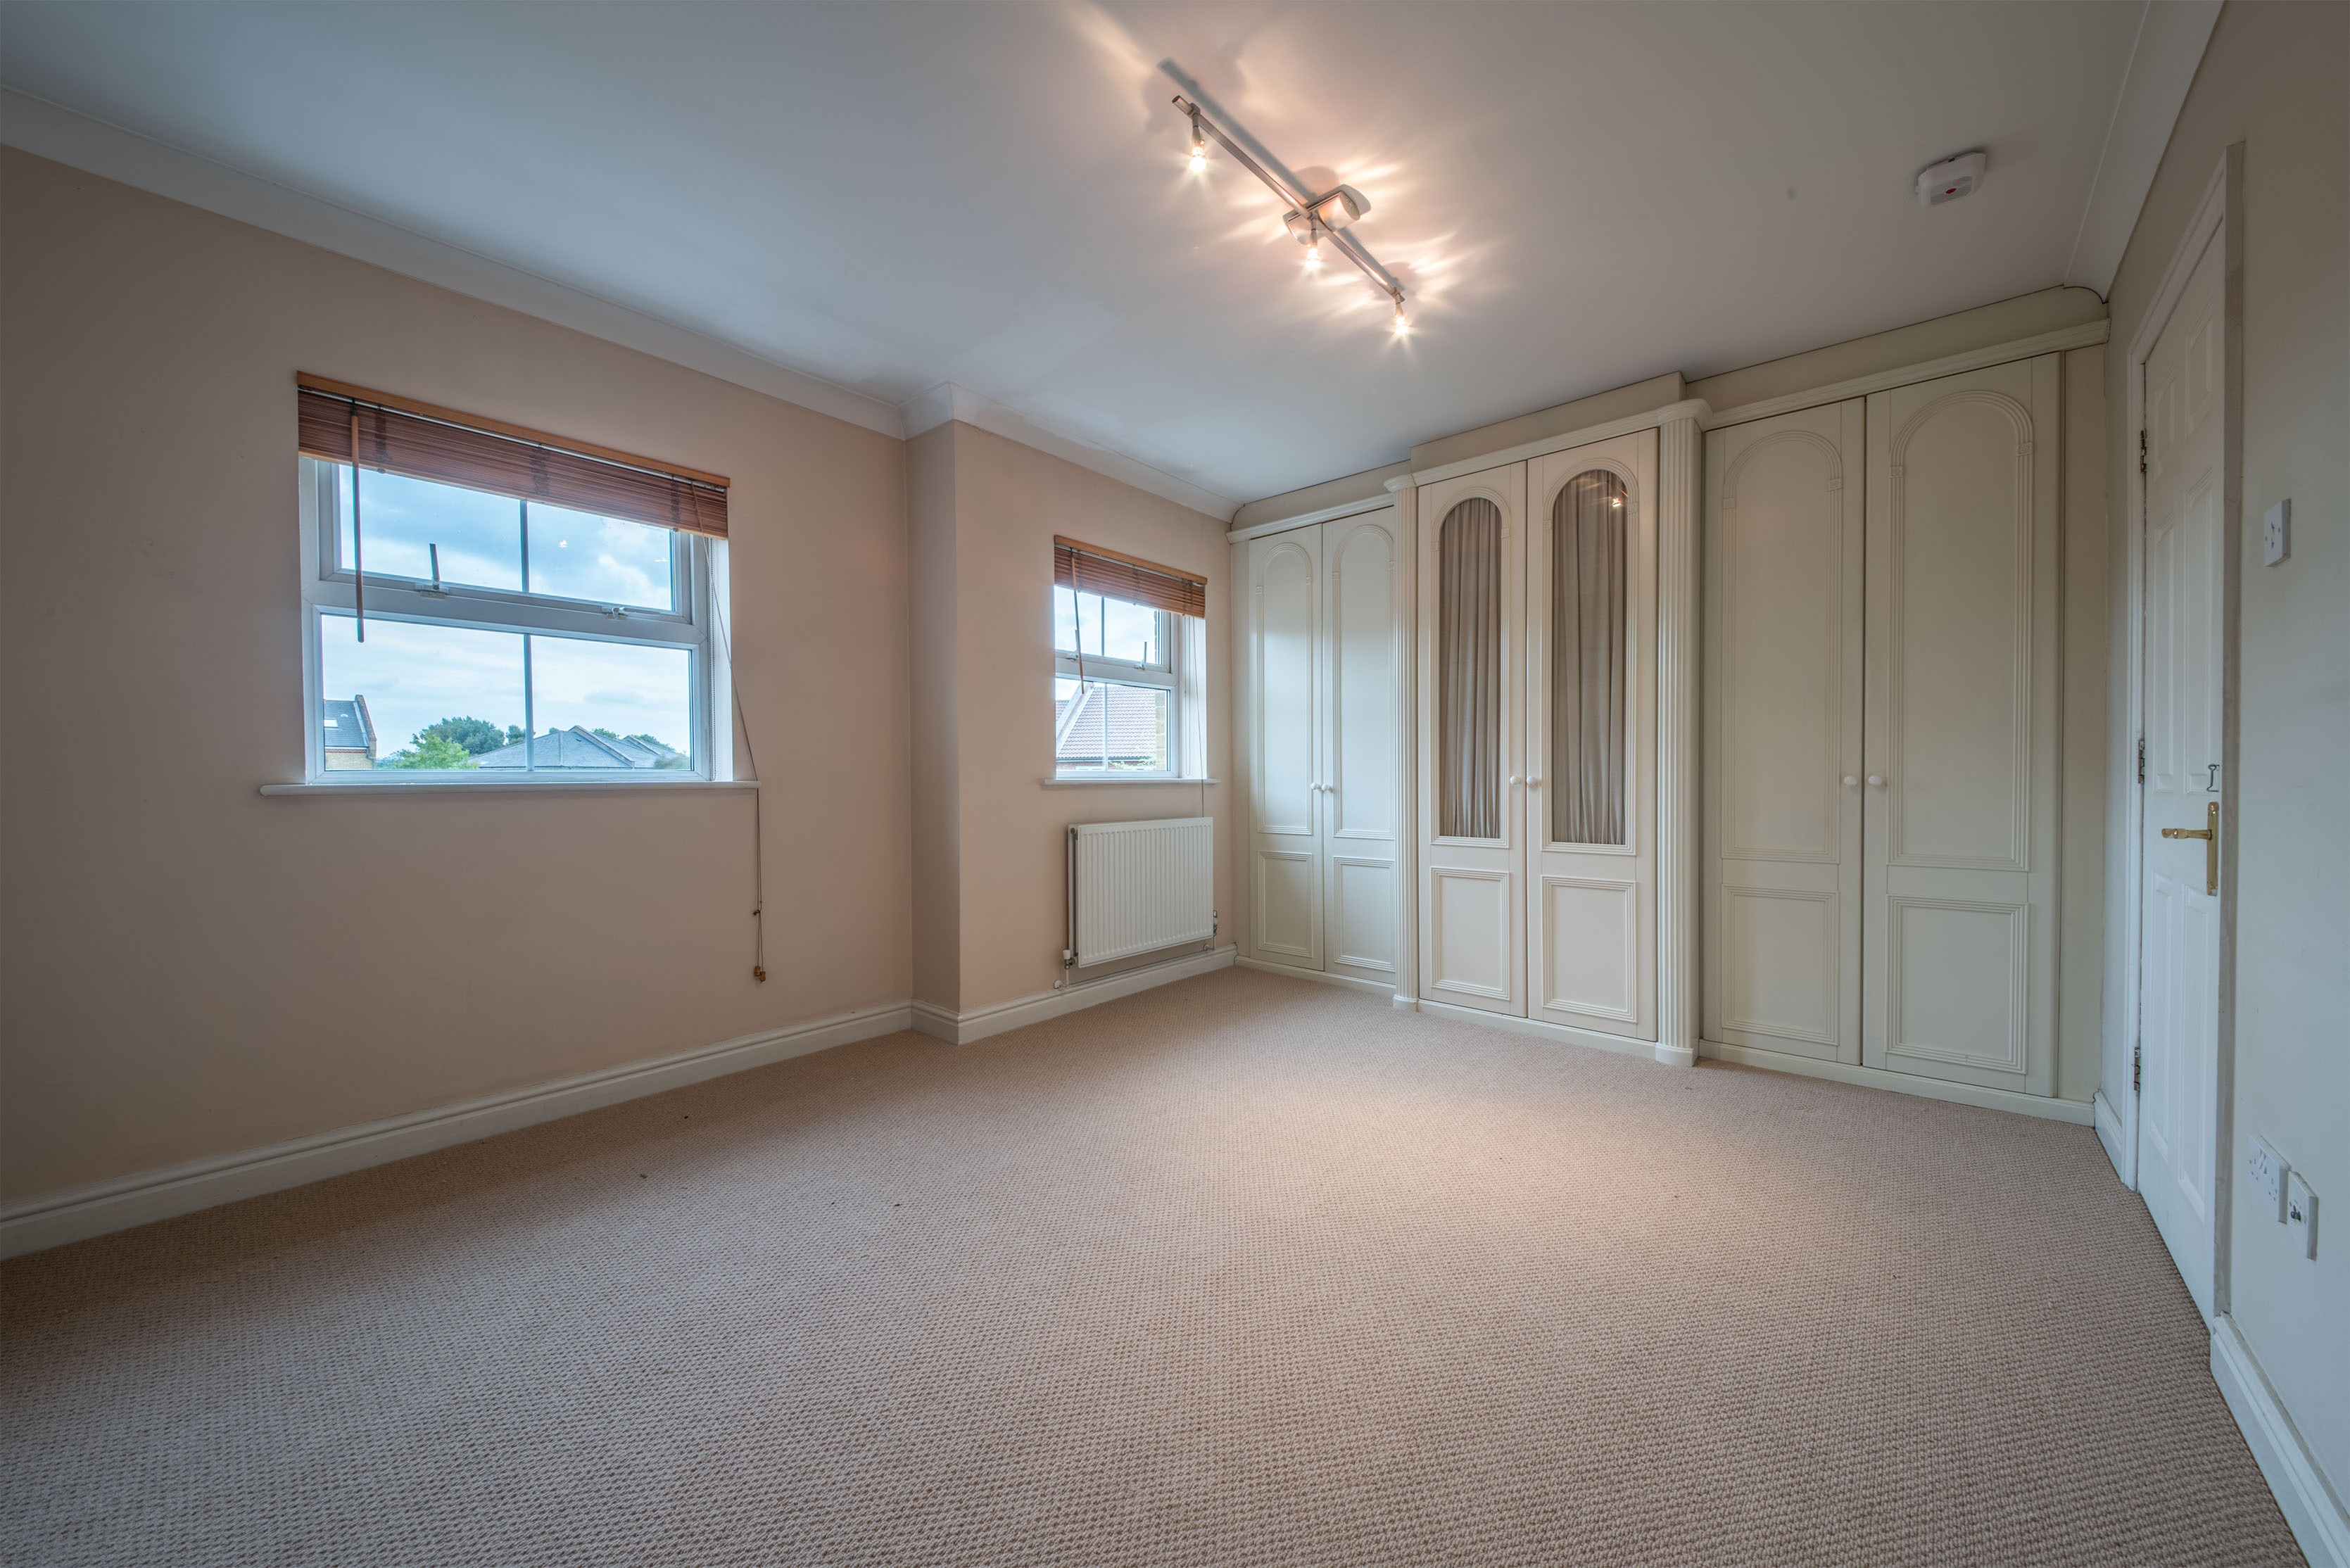 1 room in Chiswick Homefields, london, W4 2NR RoomsLocal image